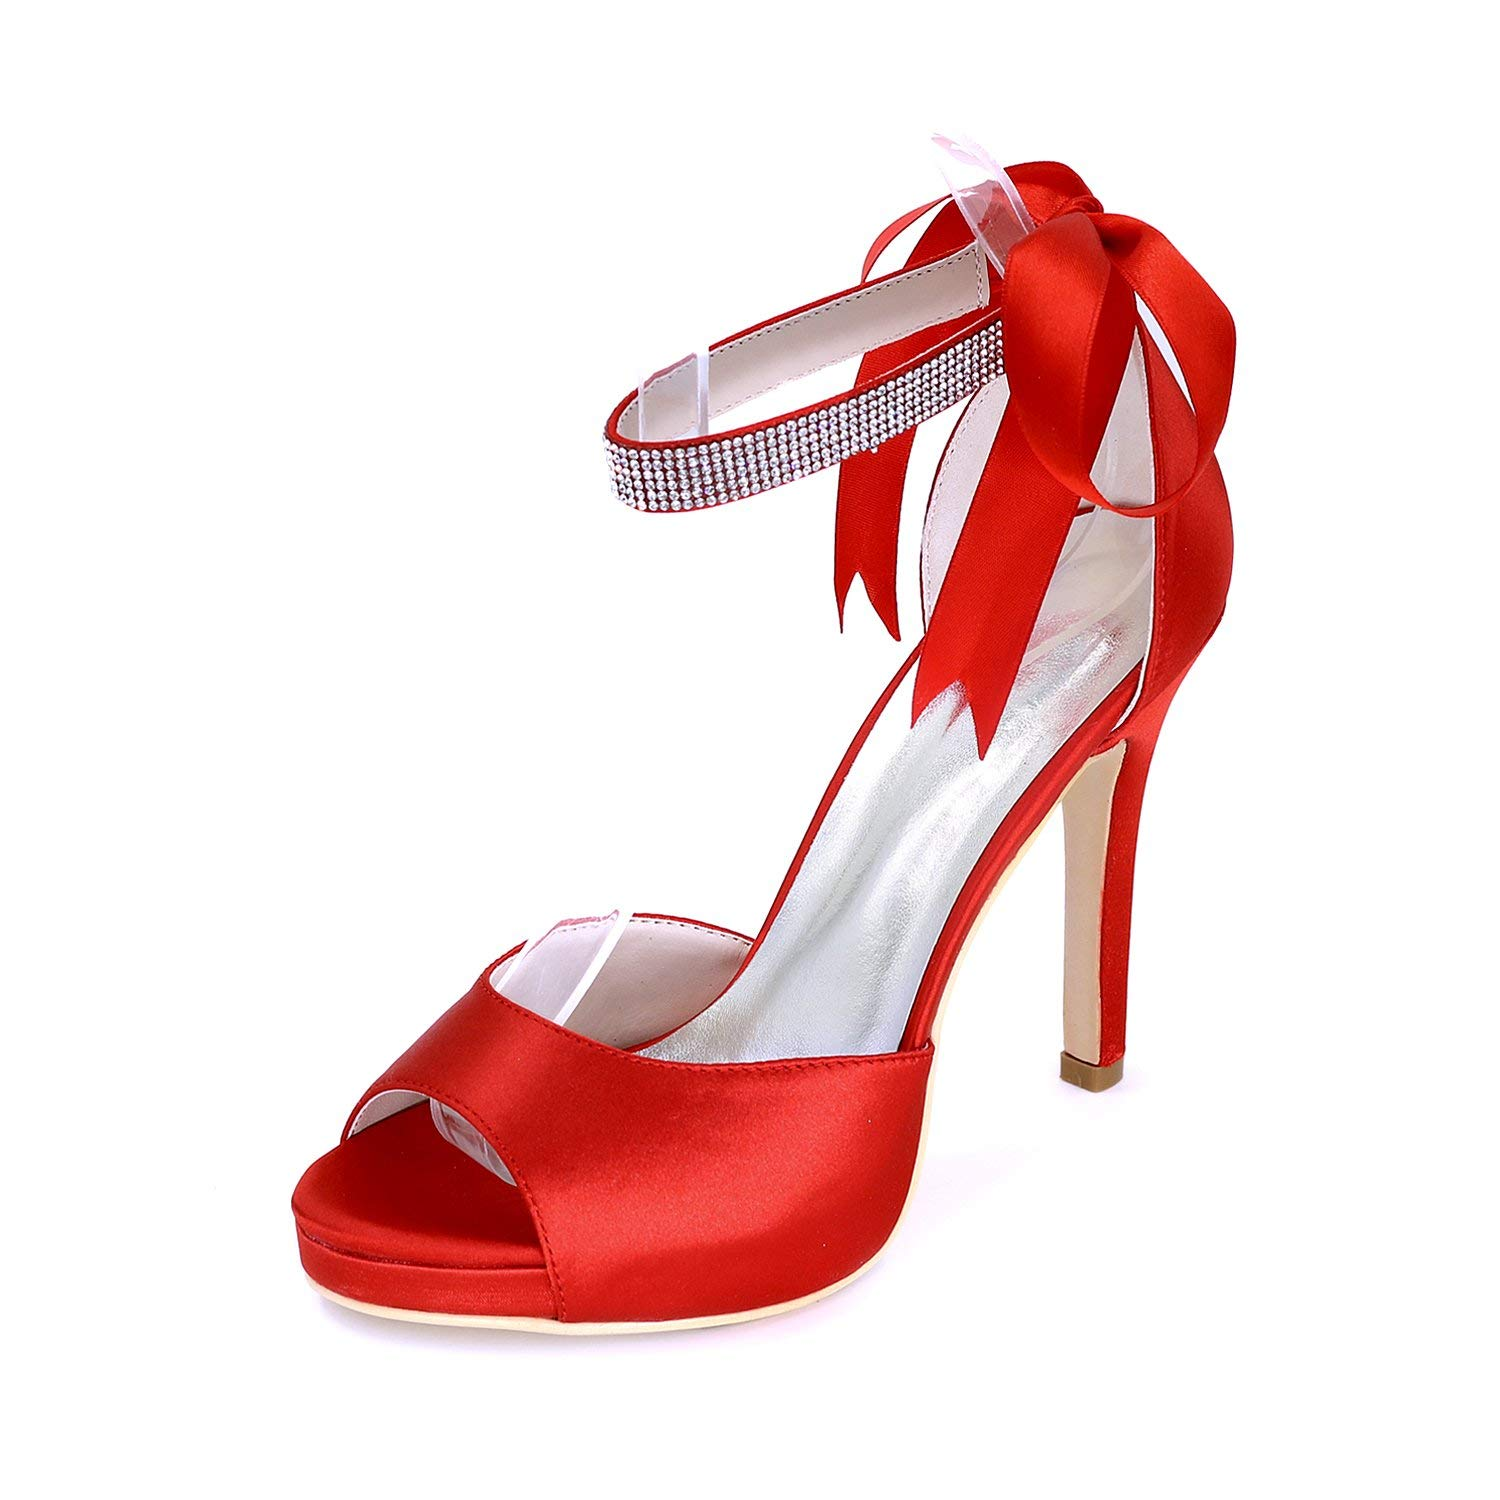 Fanciest Women's Peep Toe Pumps Heels Sandals Beaded Wedding Bridal Shoes Red 5915-20D